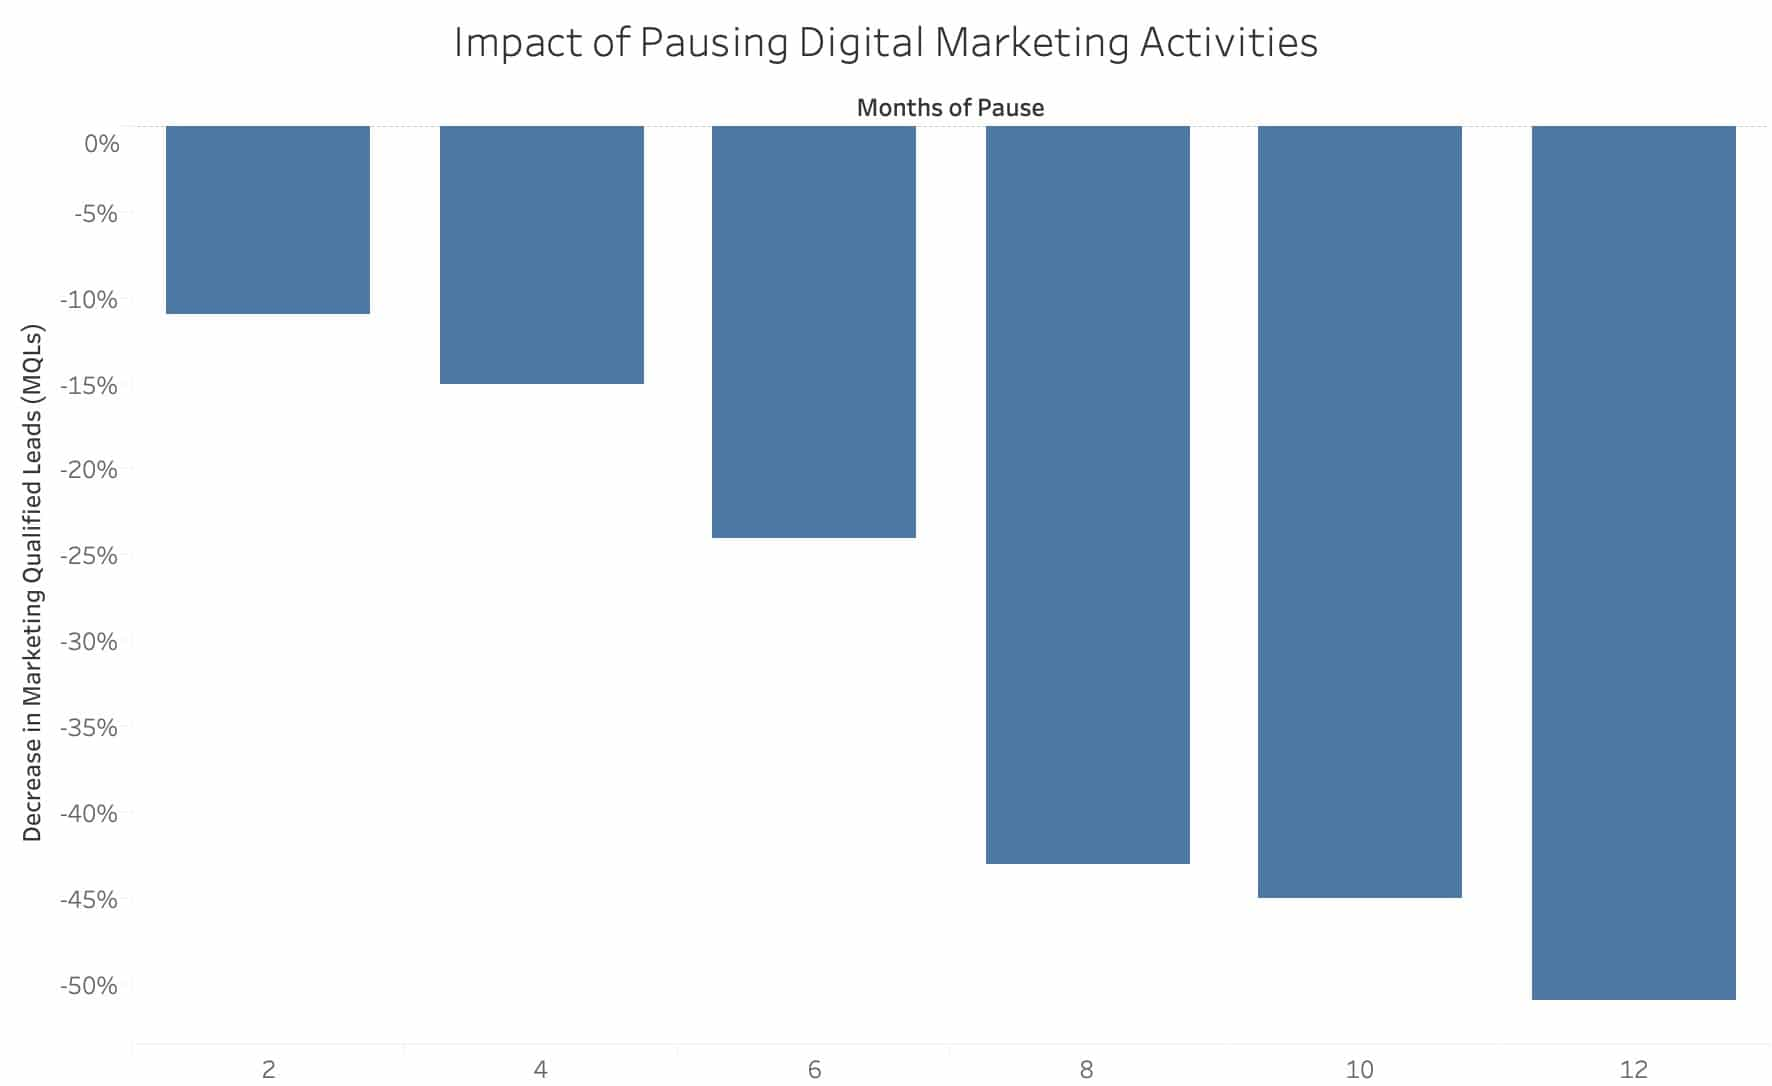 Pausing your digital marketing activities can have long-term effects.